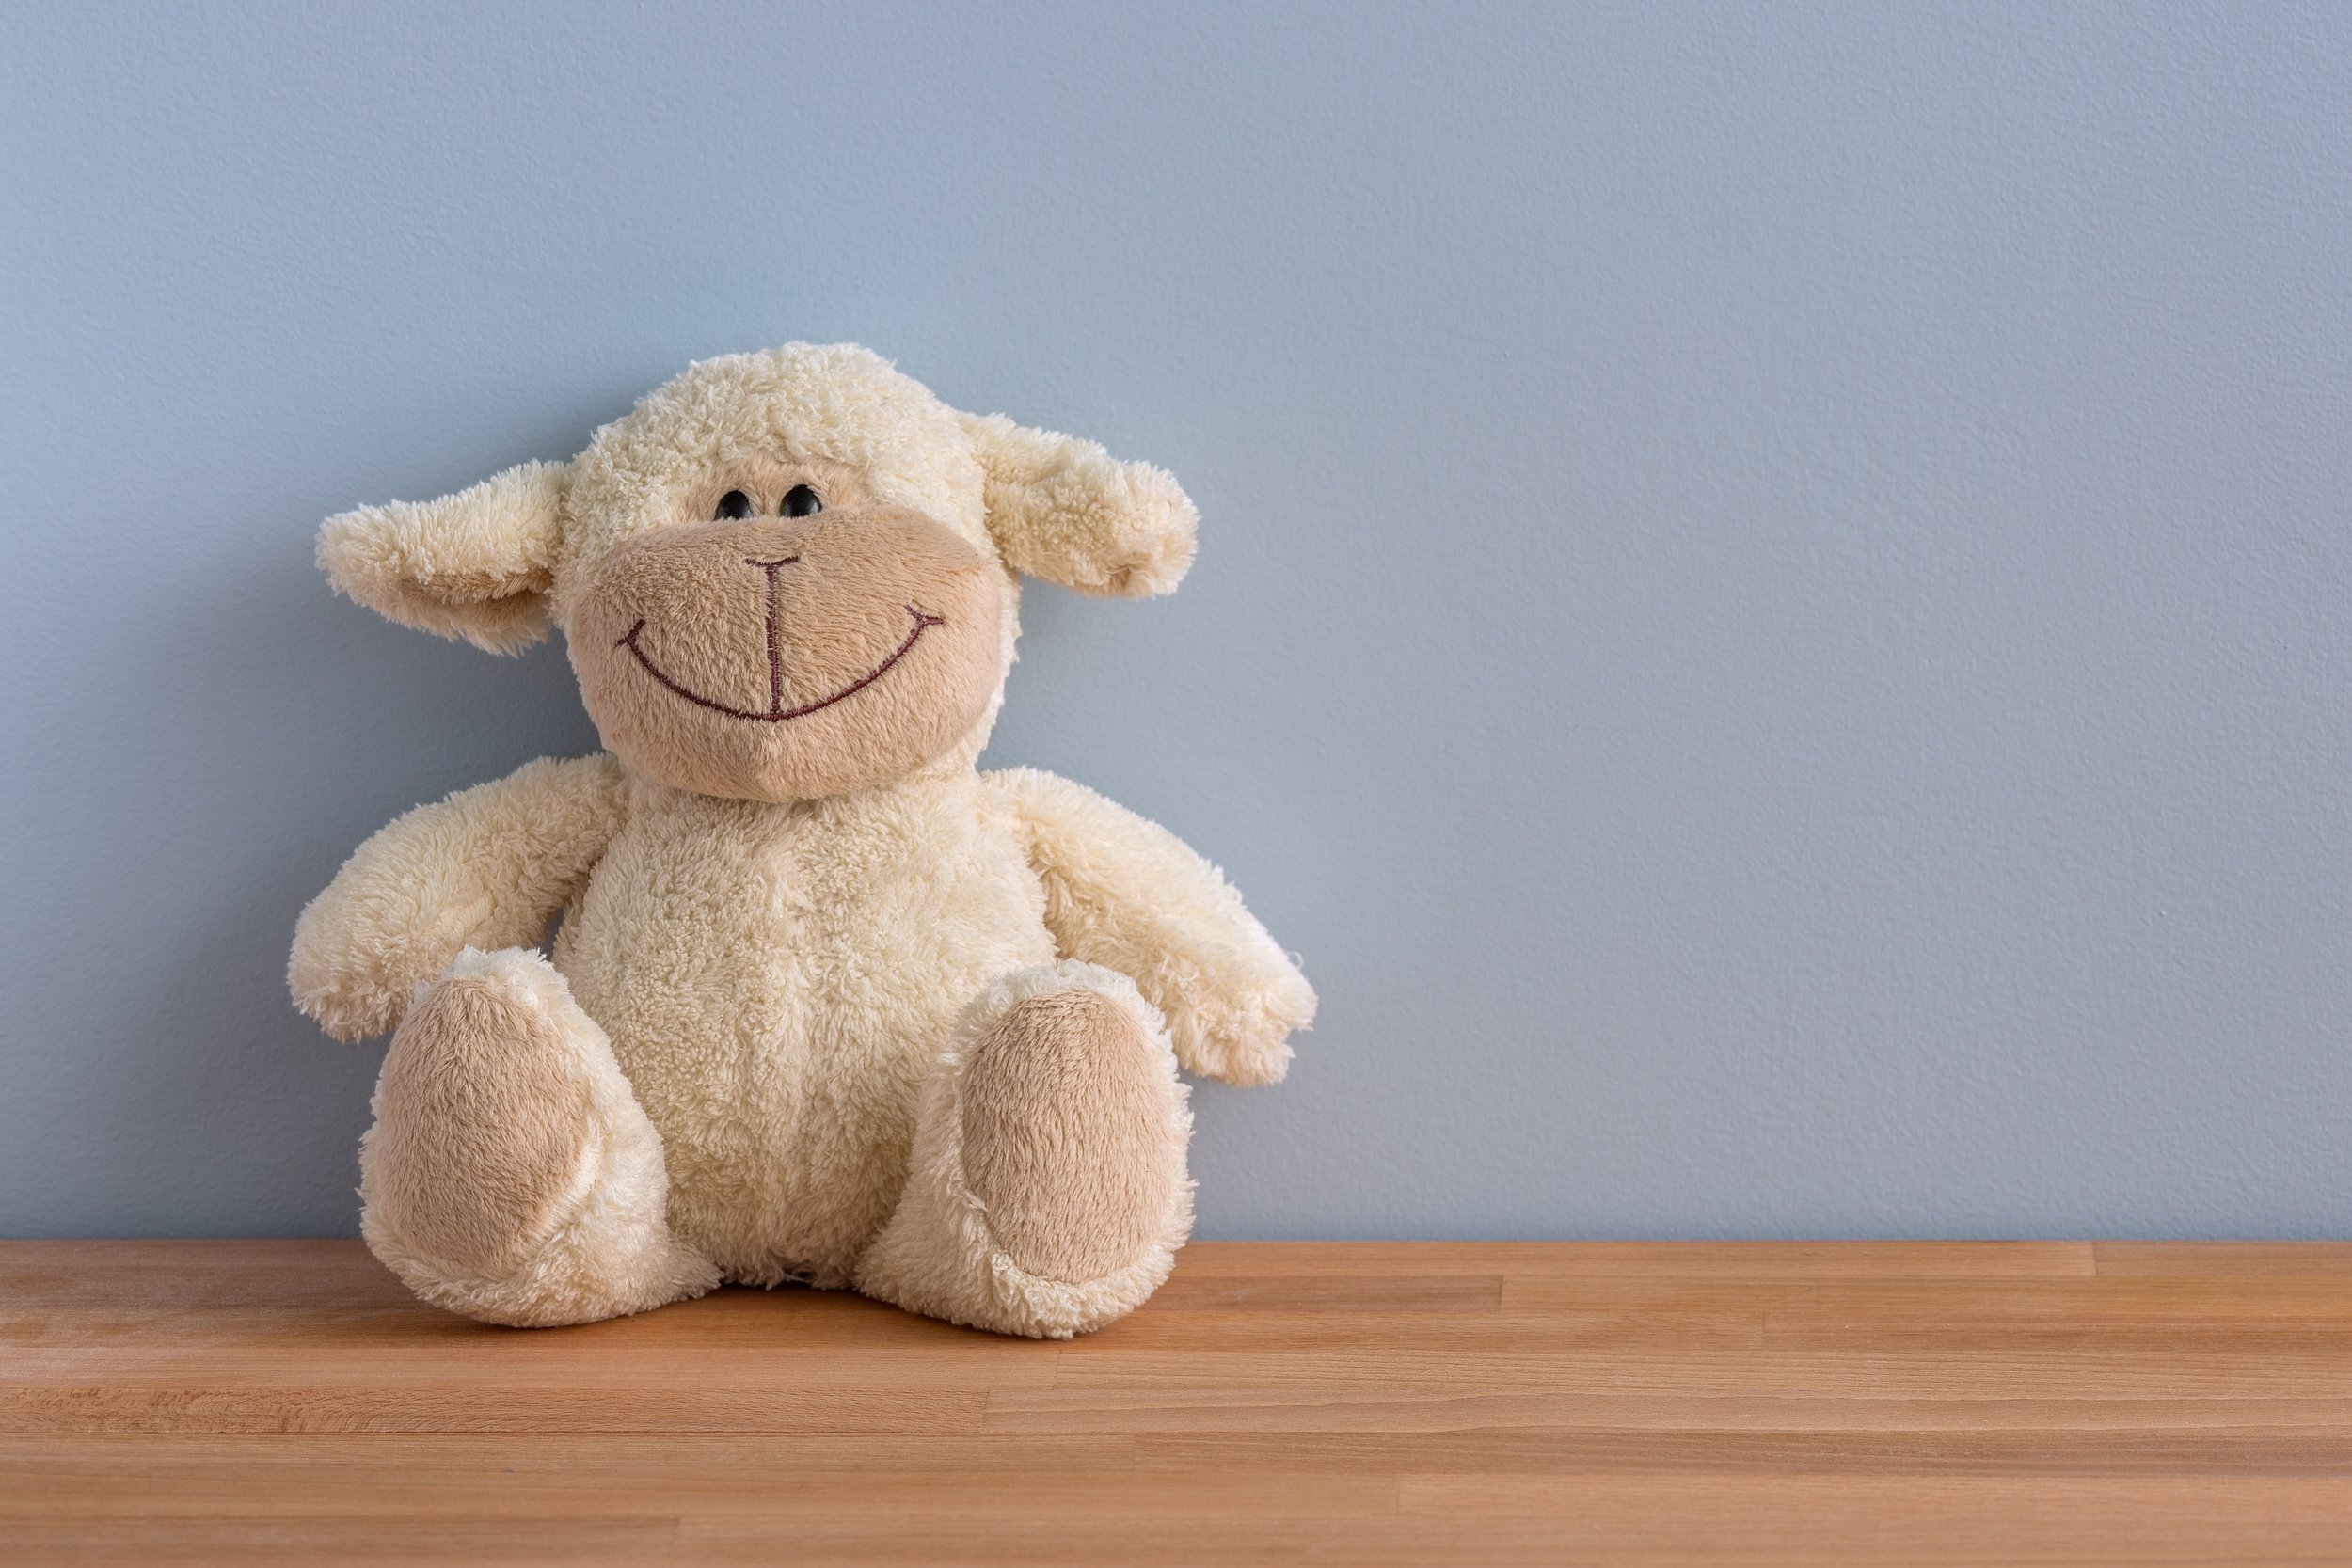 cuddly-toy-happy-smile-12211.jpg